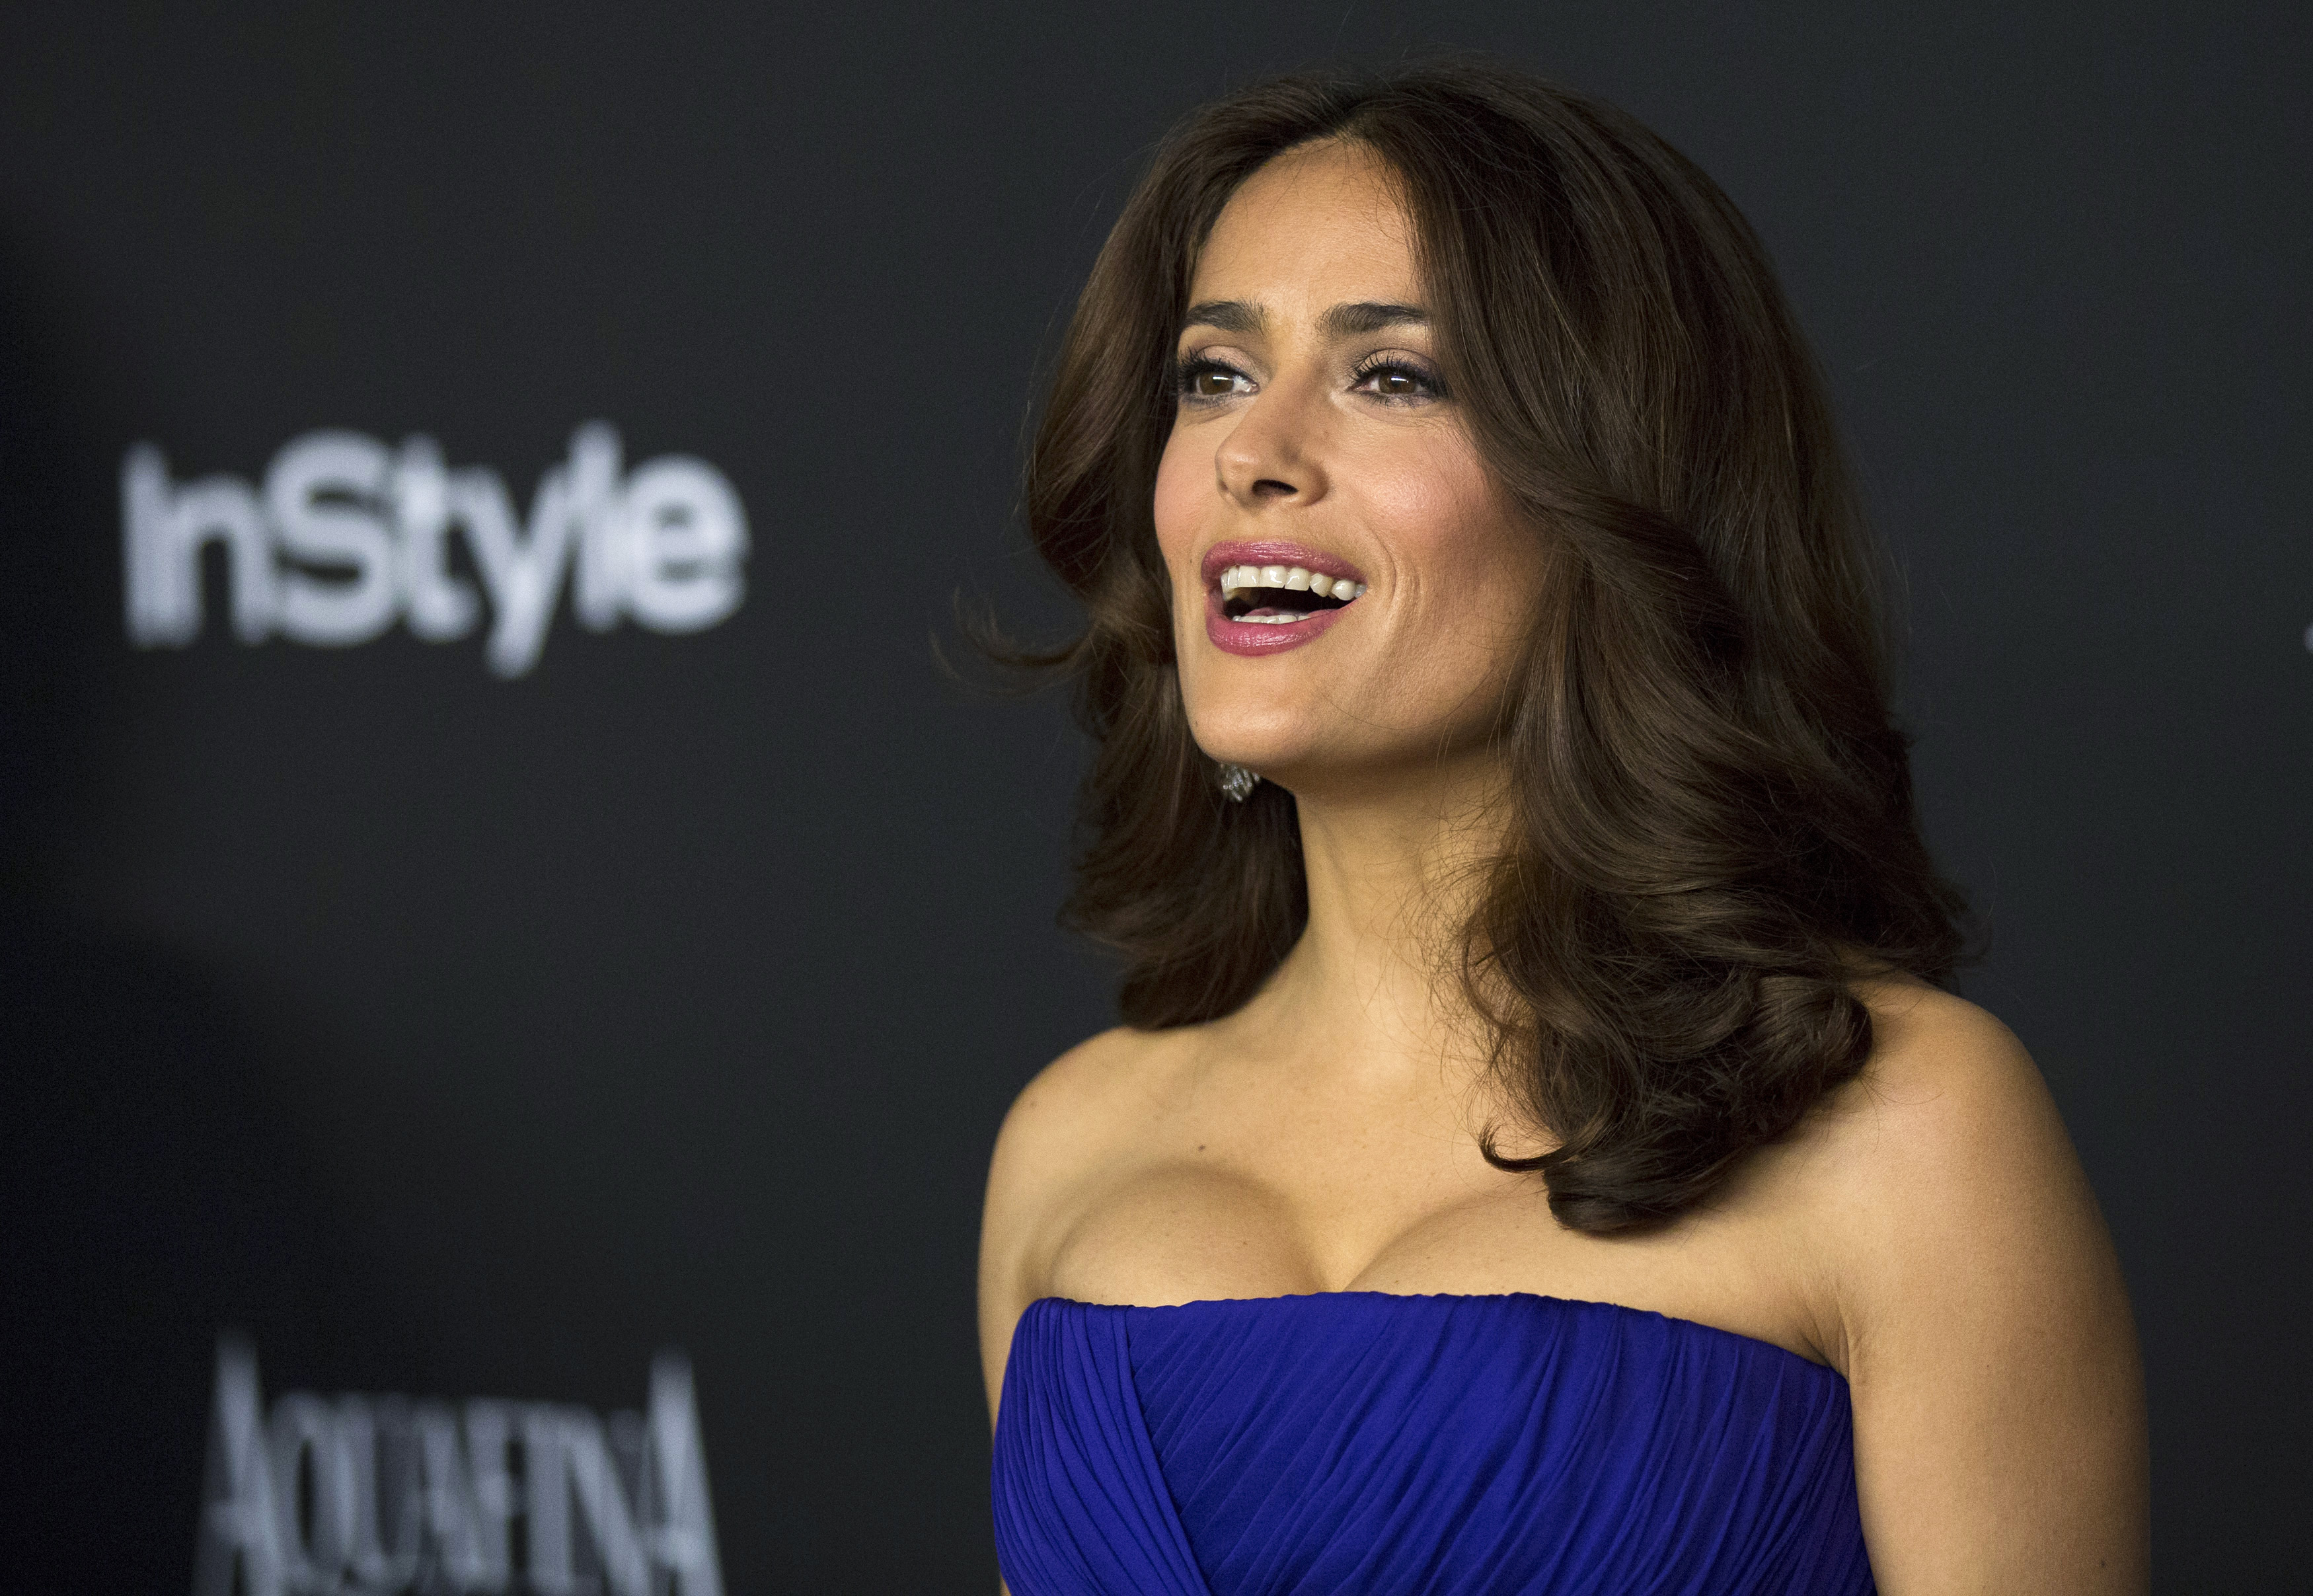 Actress Salma Hayek poses at the 16th annual InStyle and Warner Bros. party after the 72nd annual Golden Globe Awards in Beverly Hills, California on January 11, 2015. Photo: Reuters